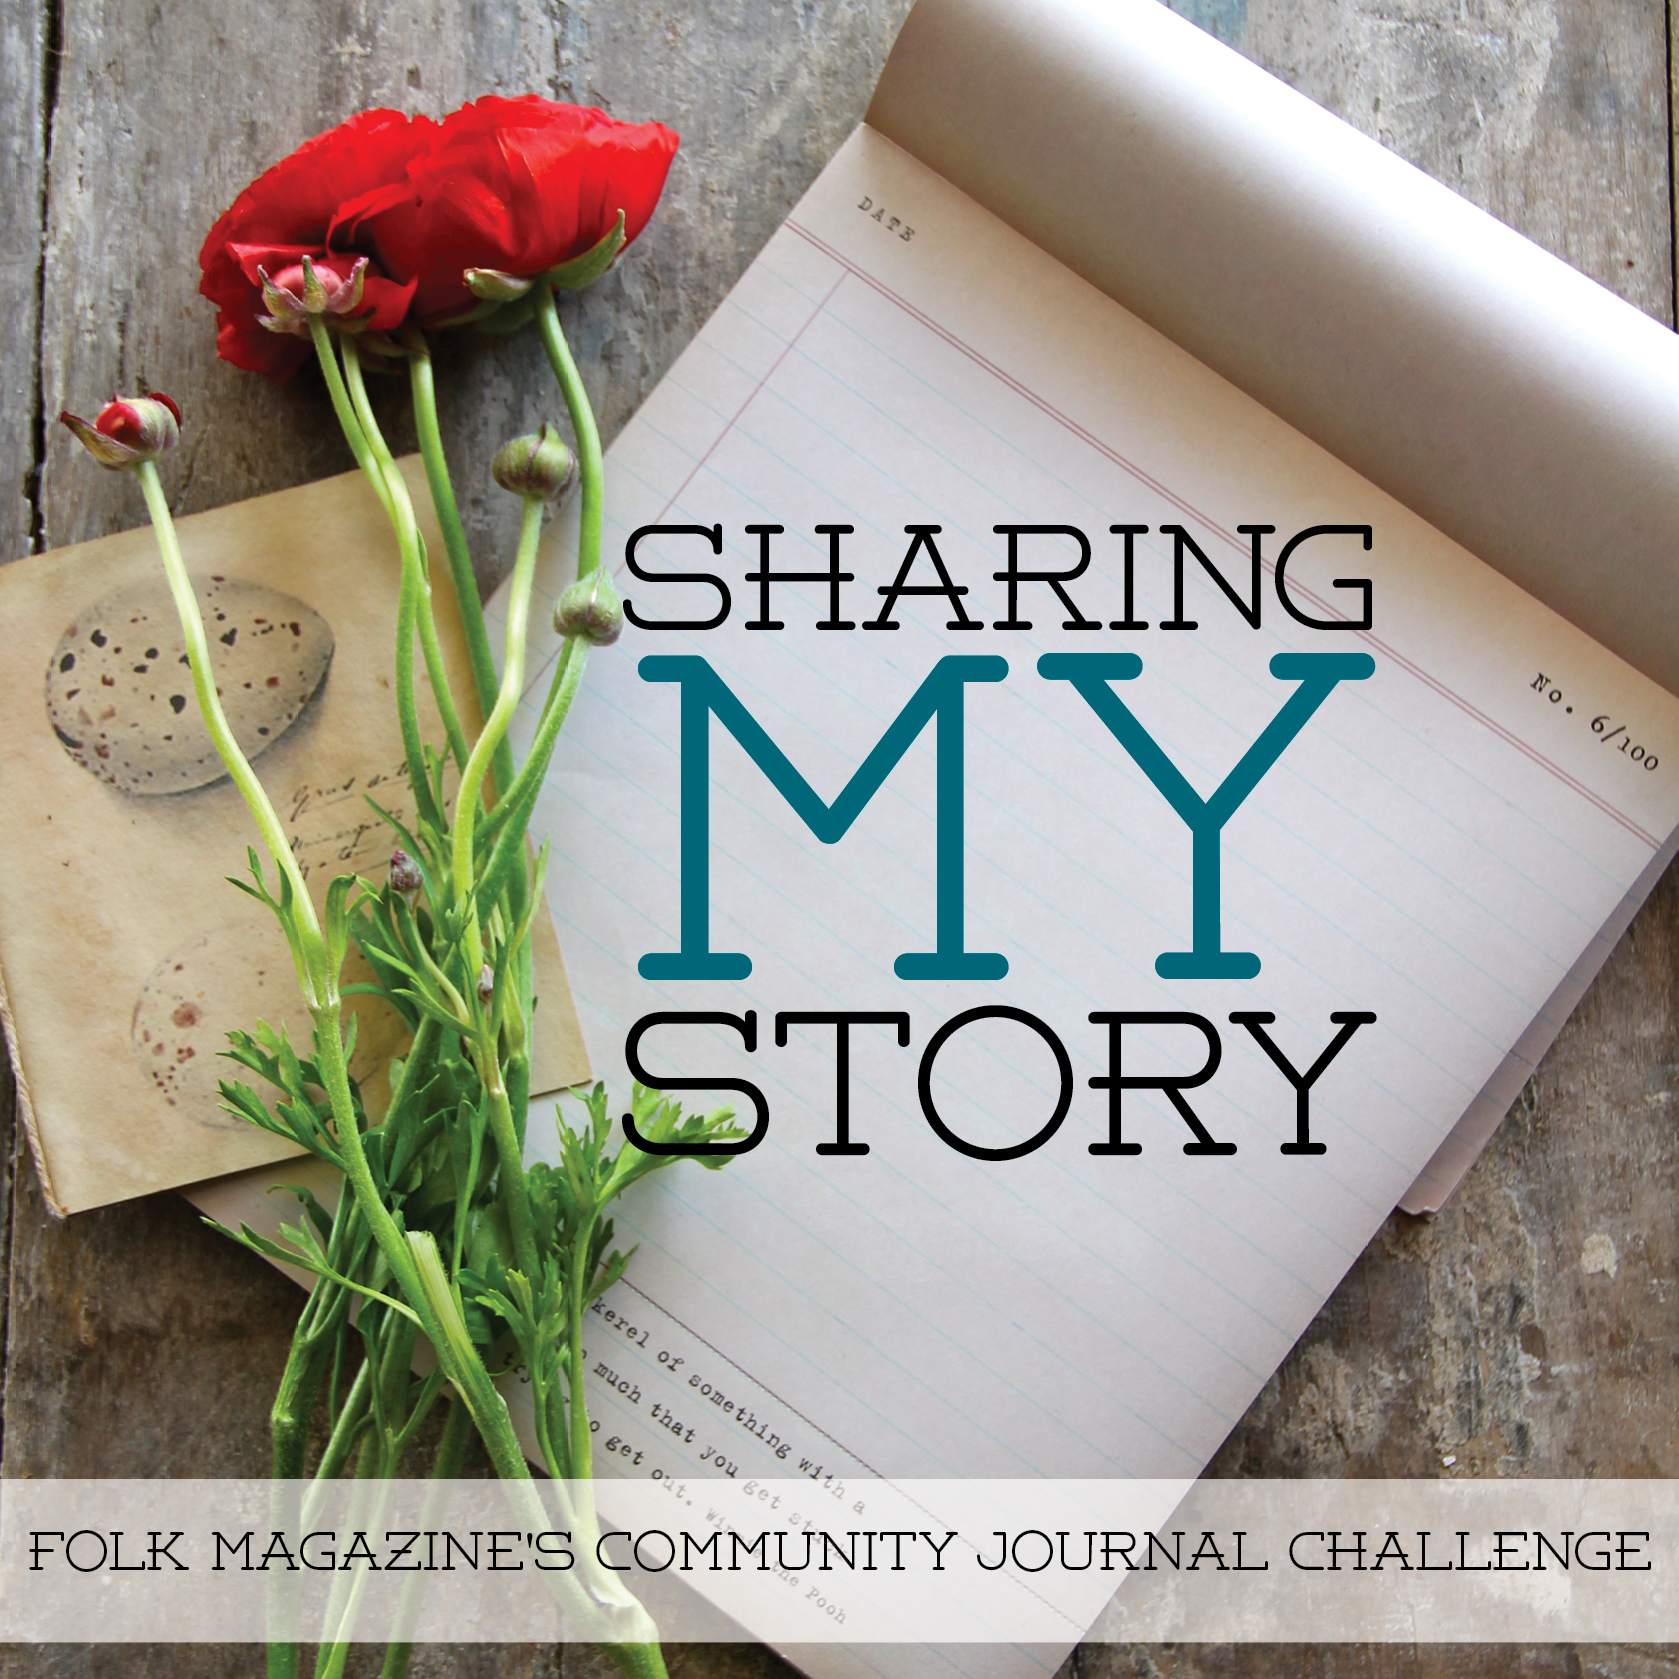 FOLK-sharemystory4